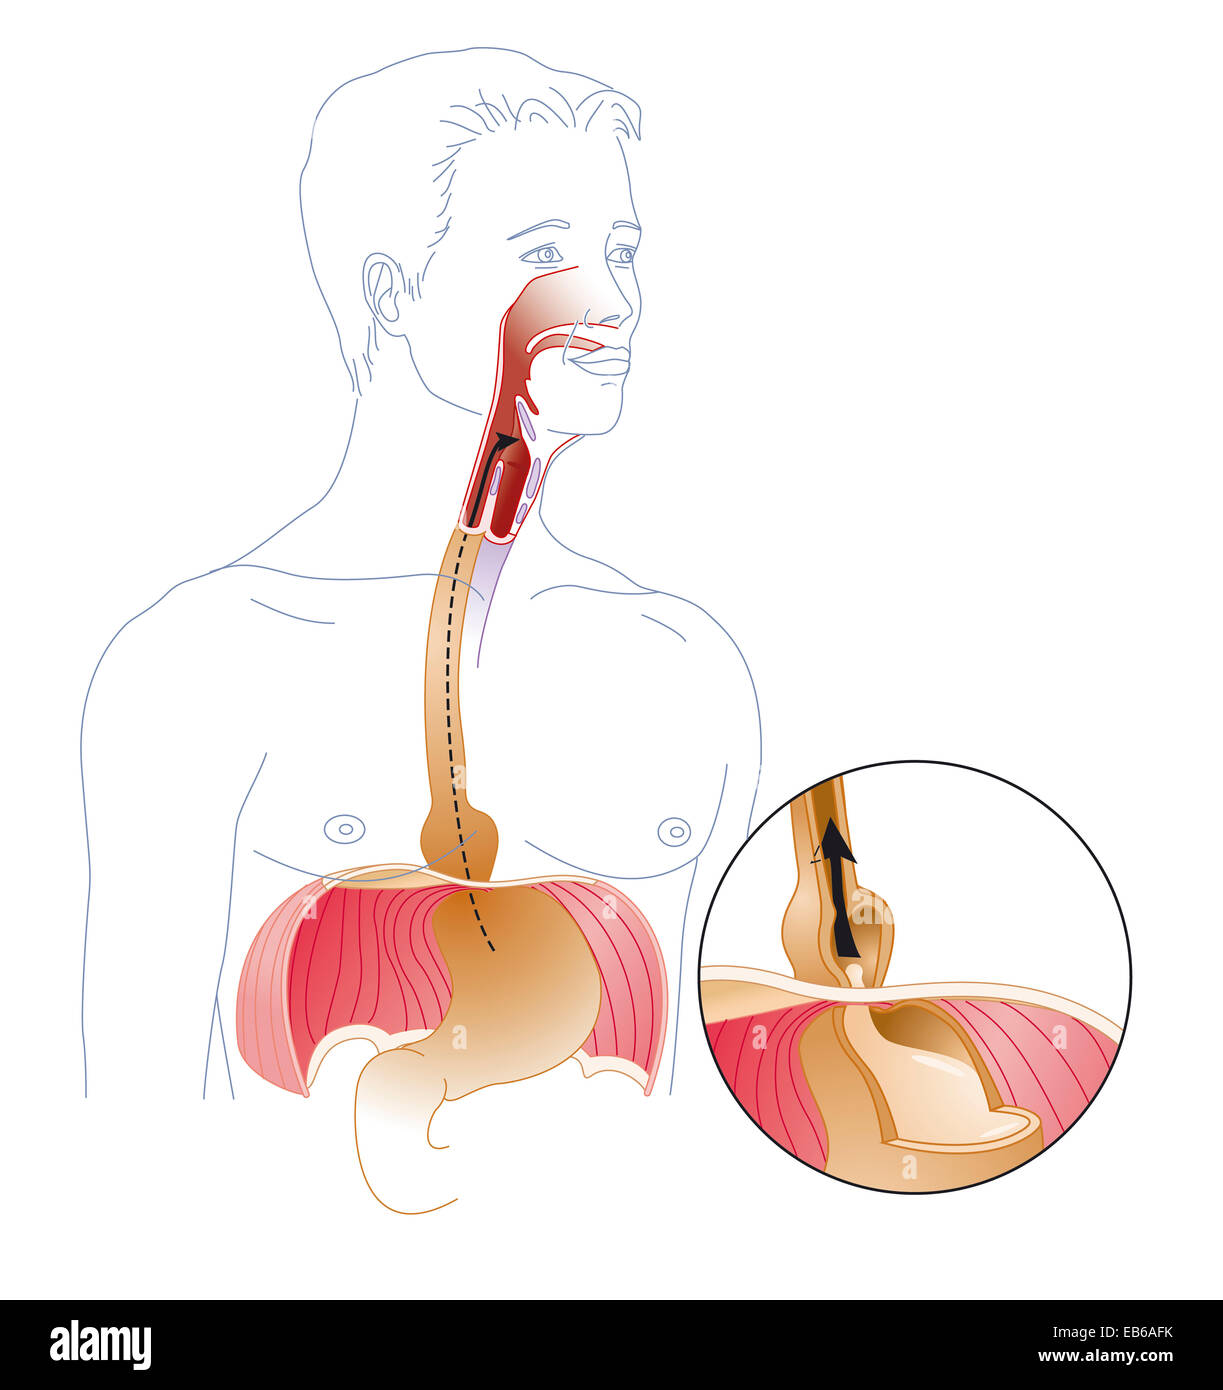 Hiatus Hernia Stock Photos & Hiatus Hernia Stock Images ...